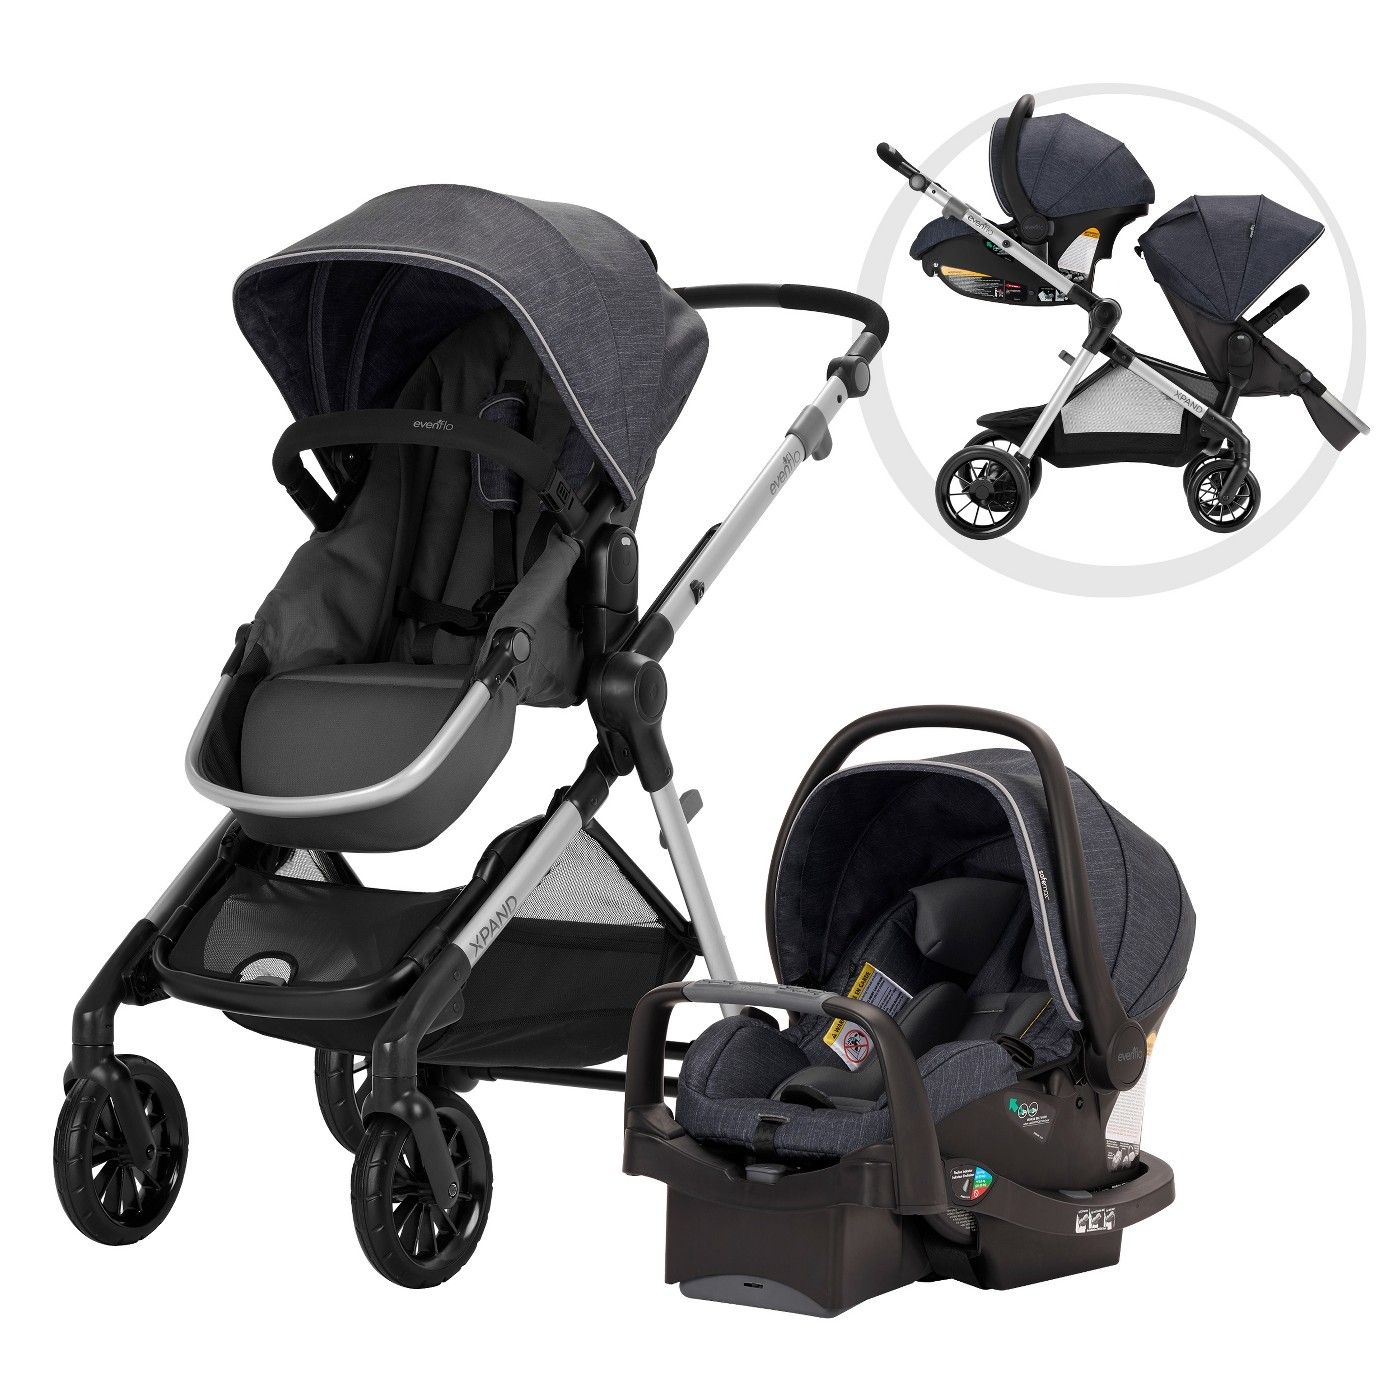 Evenflo Pivot Xpand Modular Travel System with Safemax